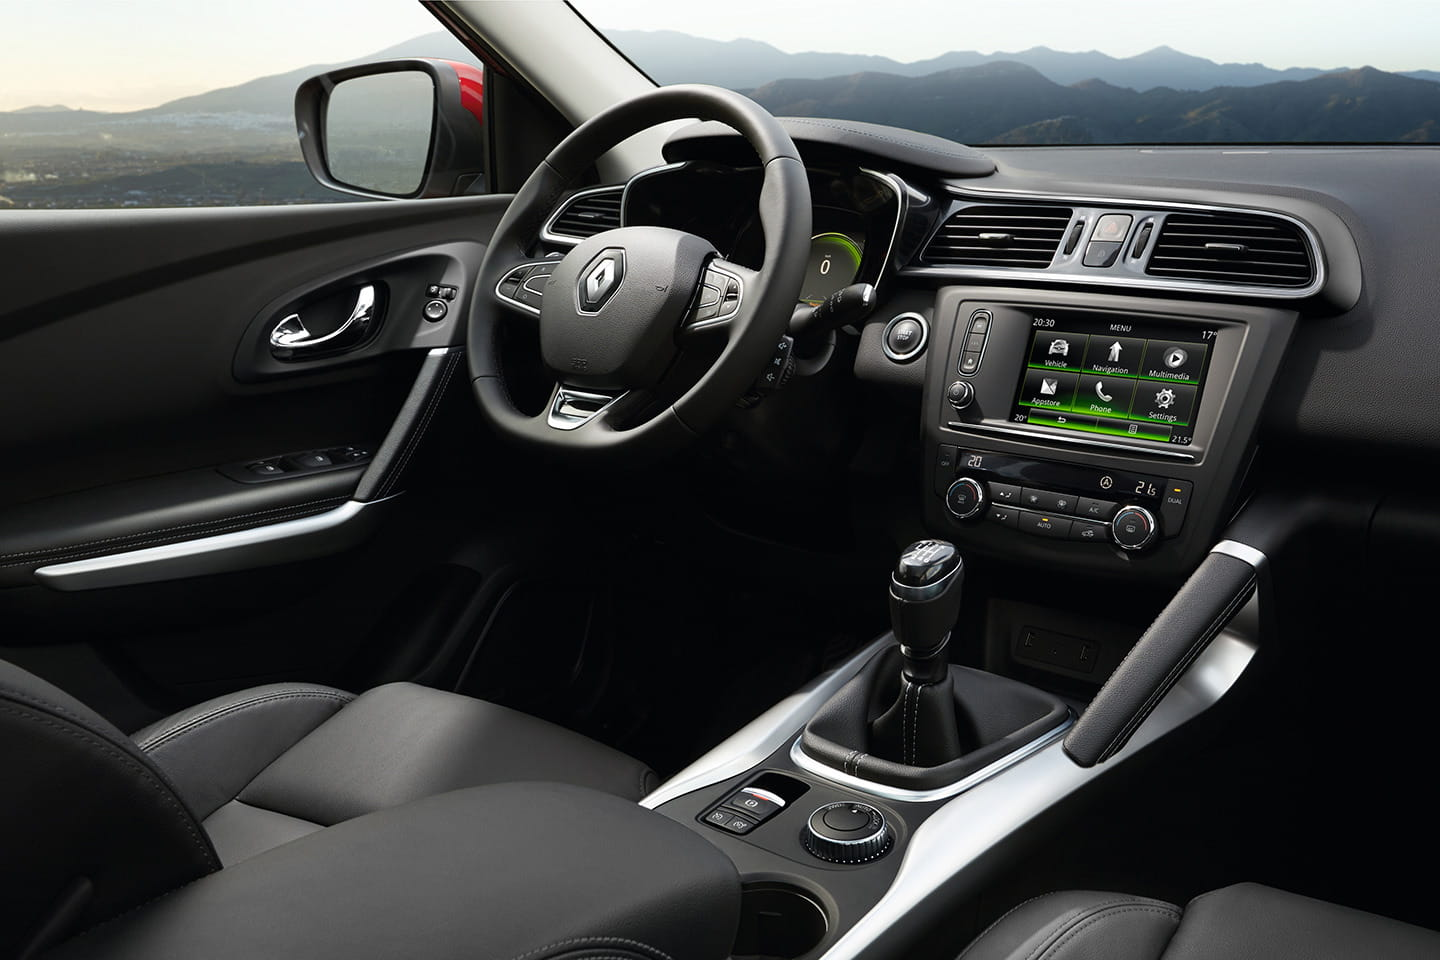 2018 Nissan Maxima Review furthermore Dancing Wallpaper moreover Renault Kadjar 2015 moreover Nissan 370z Nismo Youtube also Softail Slim Modifications. on 2016 nissan maxima interior